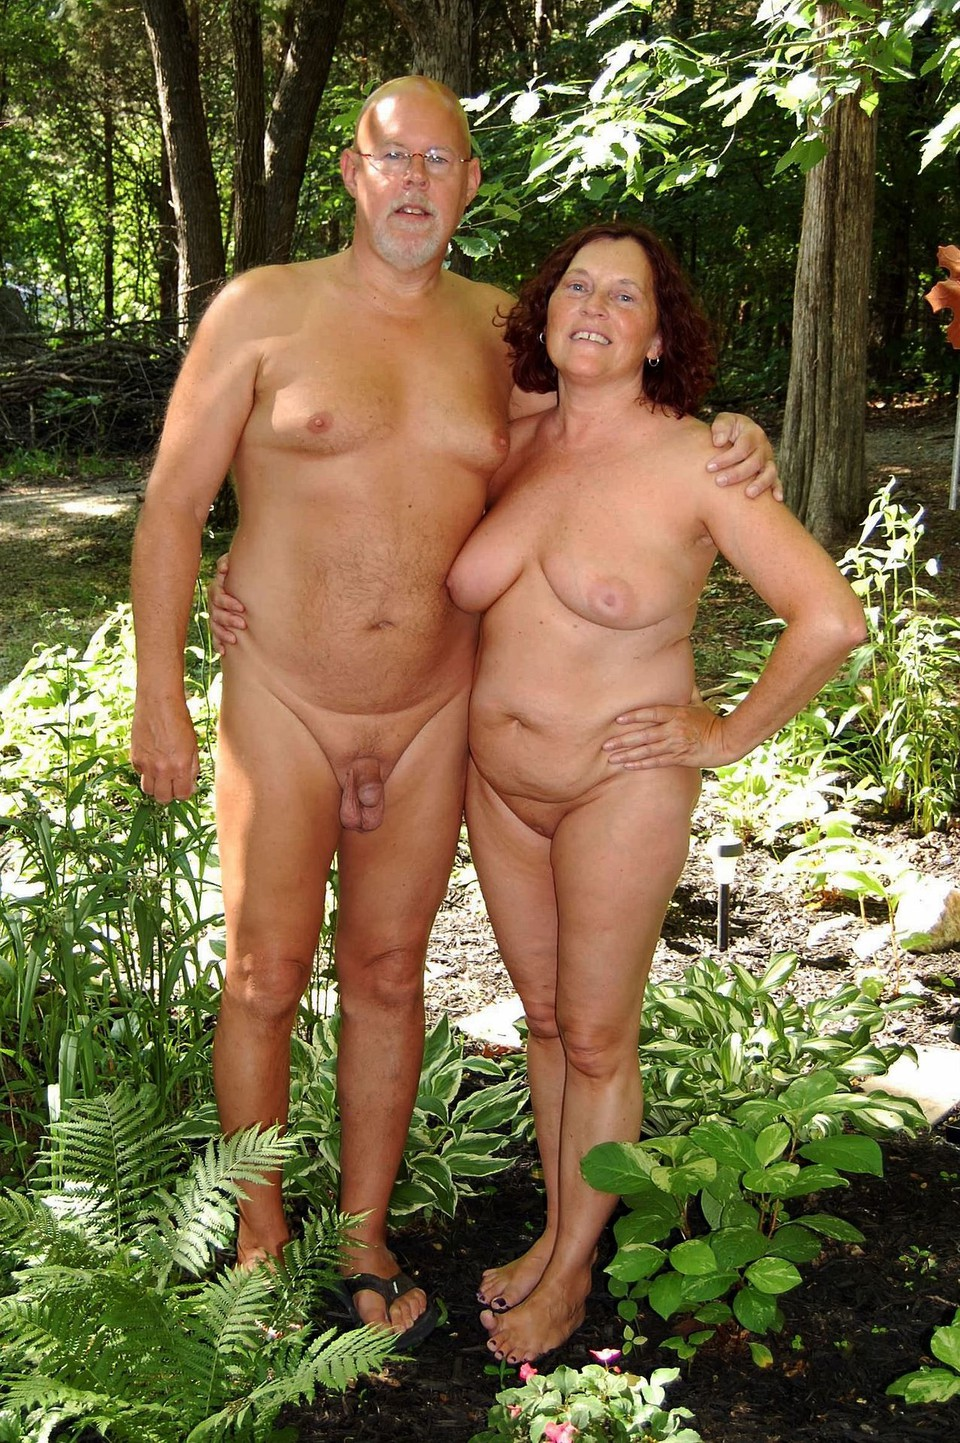 tumblr best mature nude couples